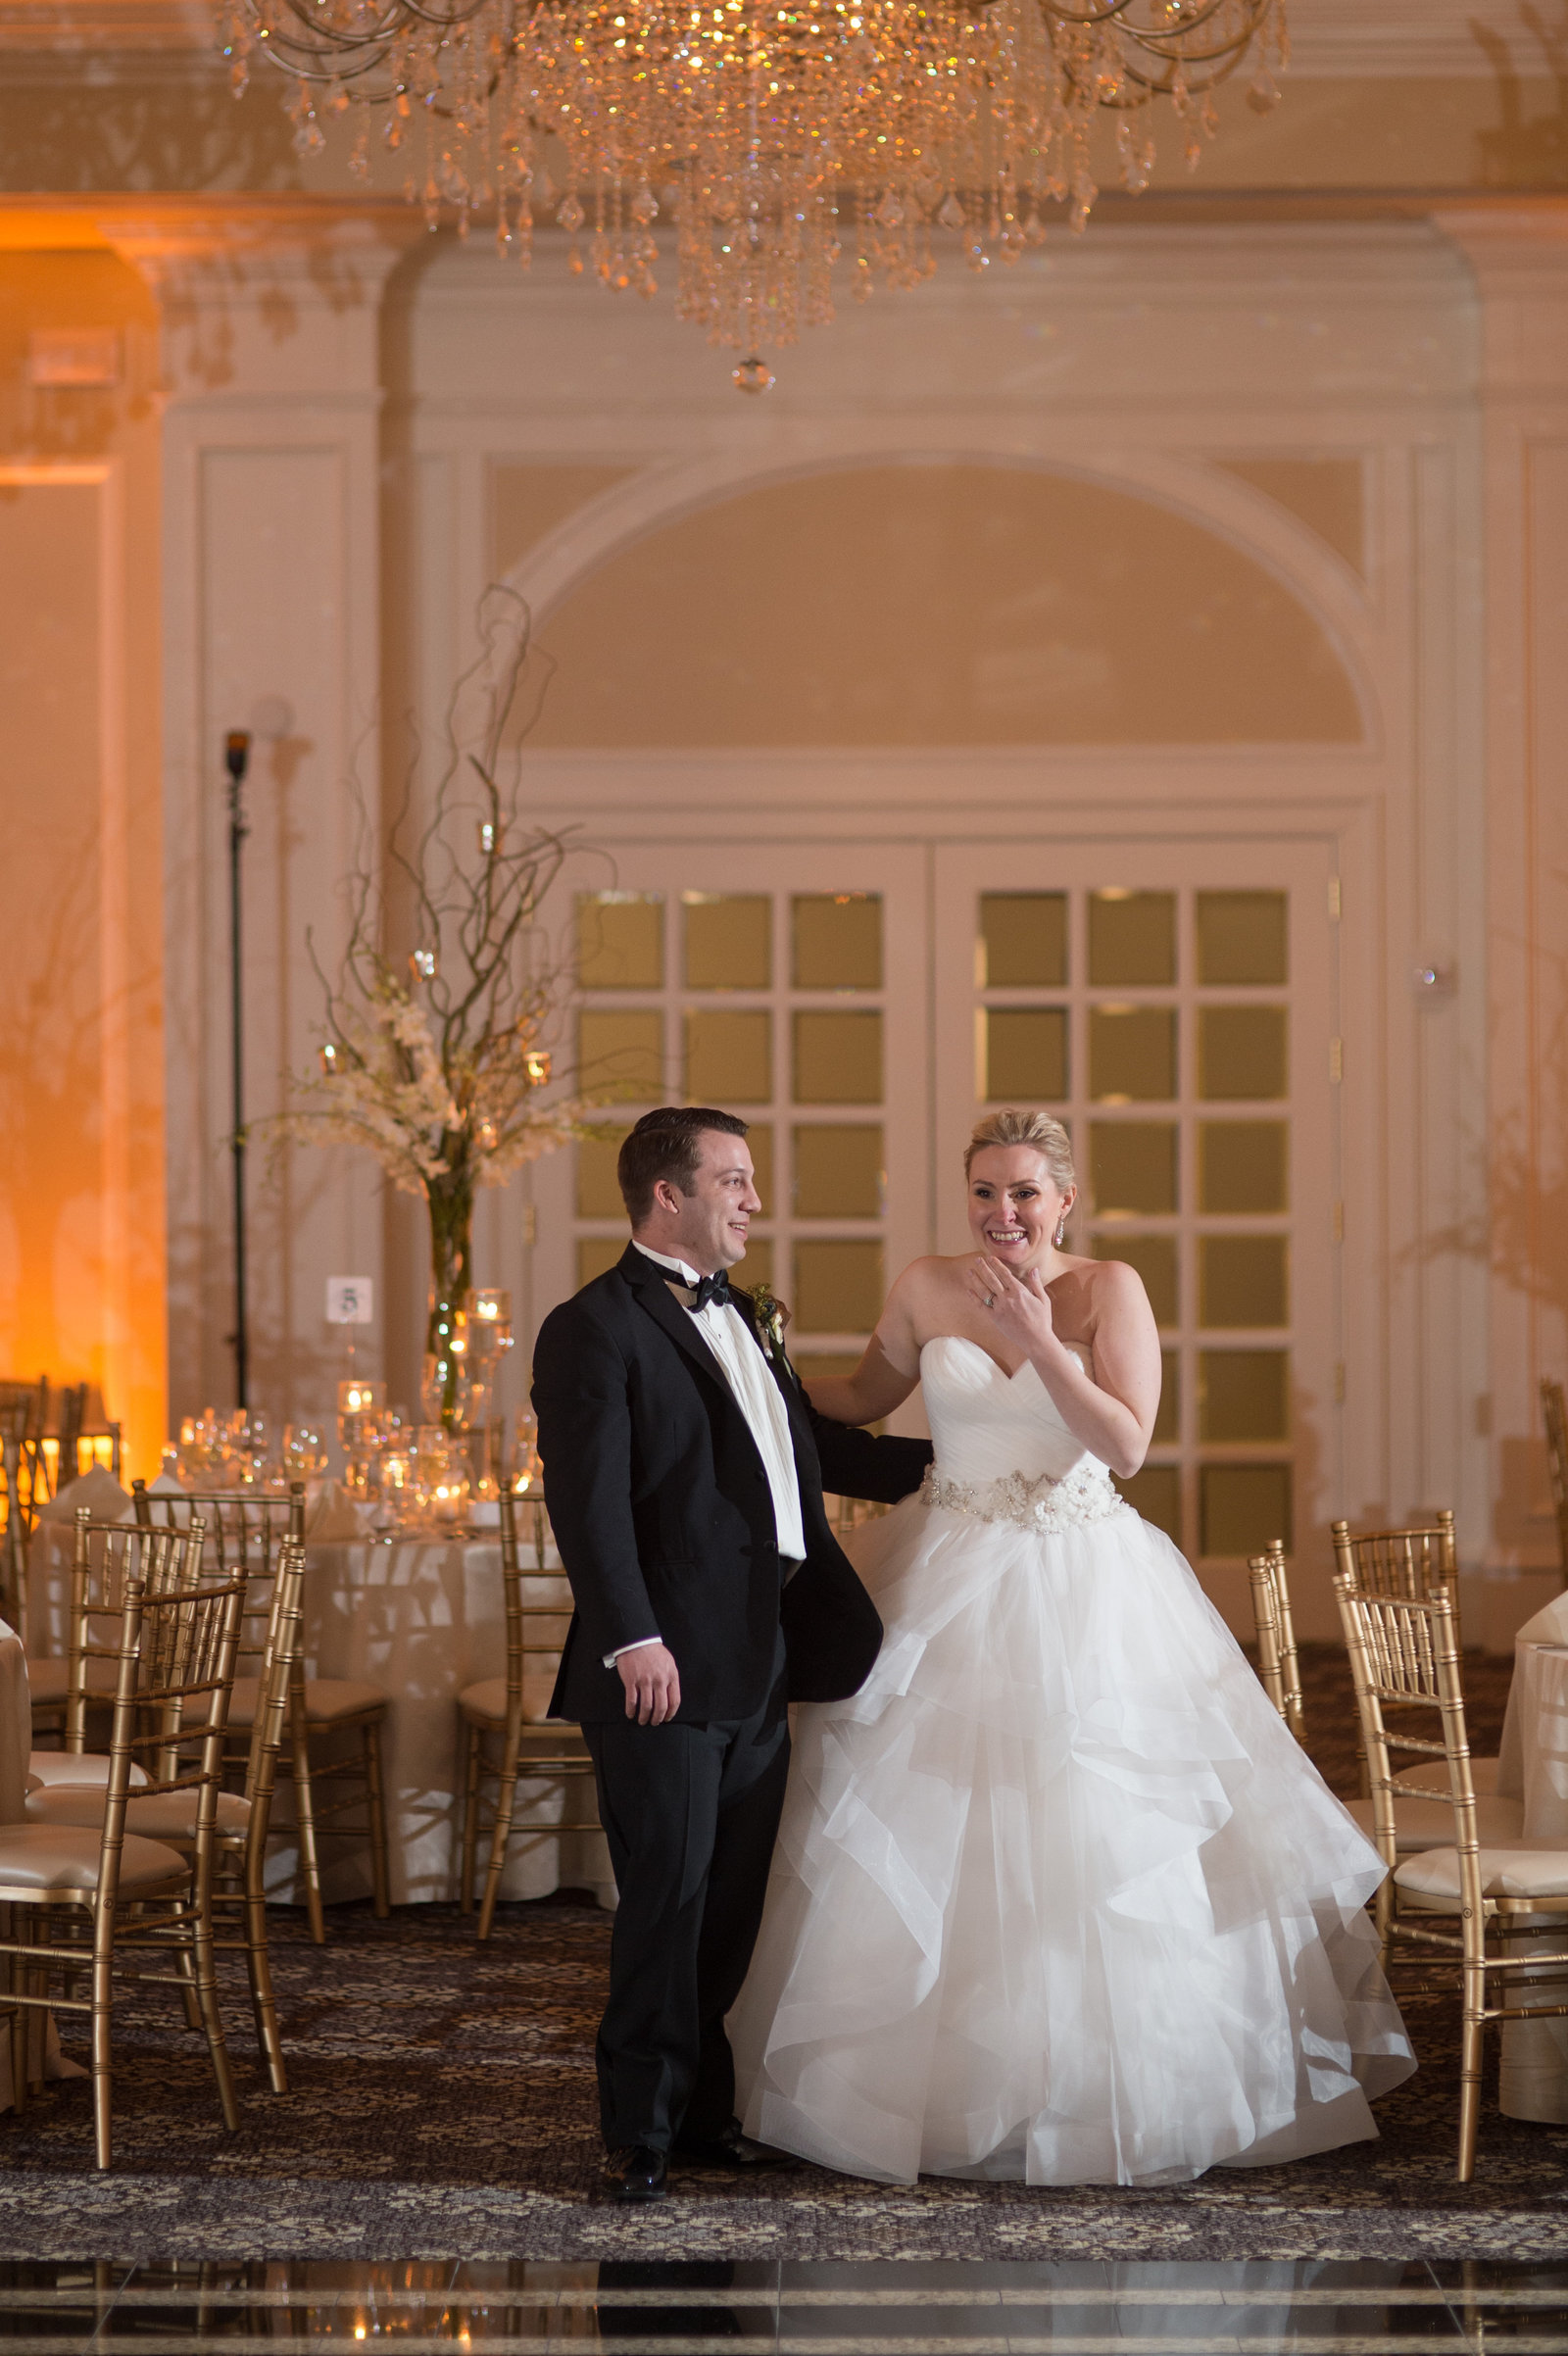 Keane Eye Photography-amanda-spiro-le-chateau-wedding-226